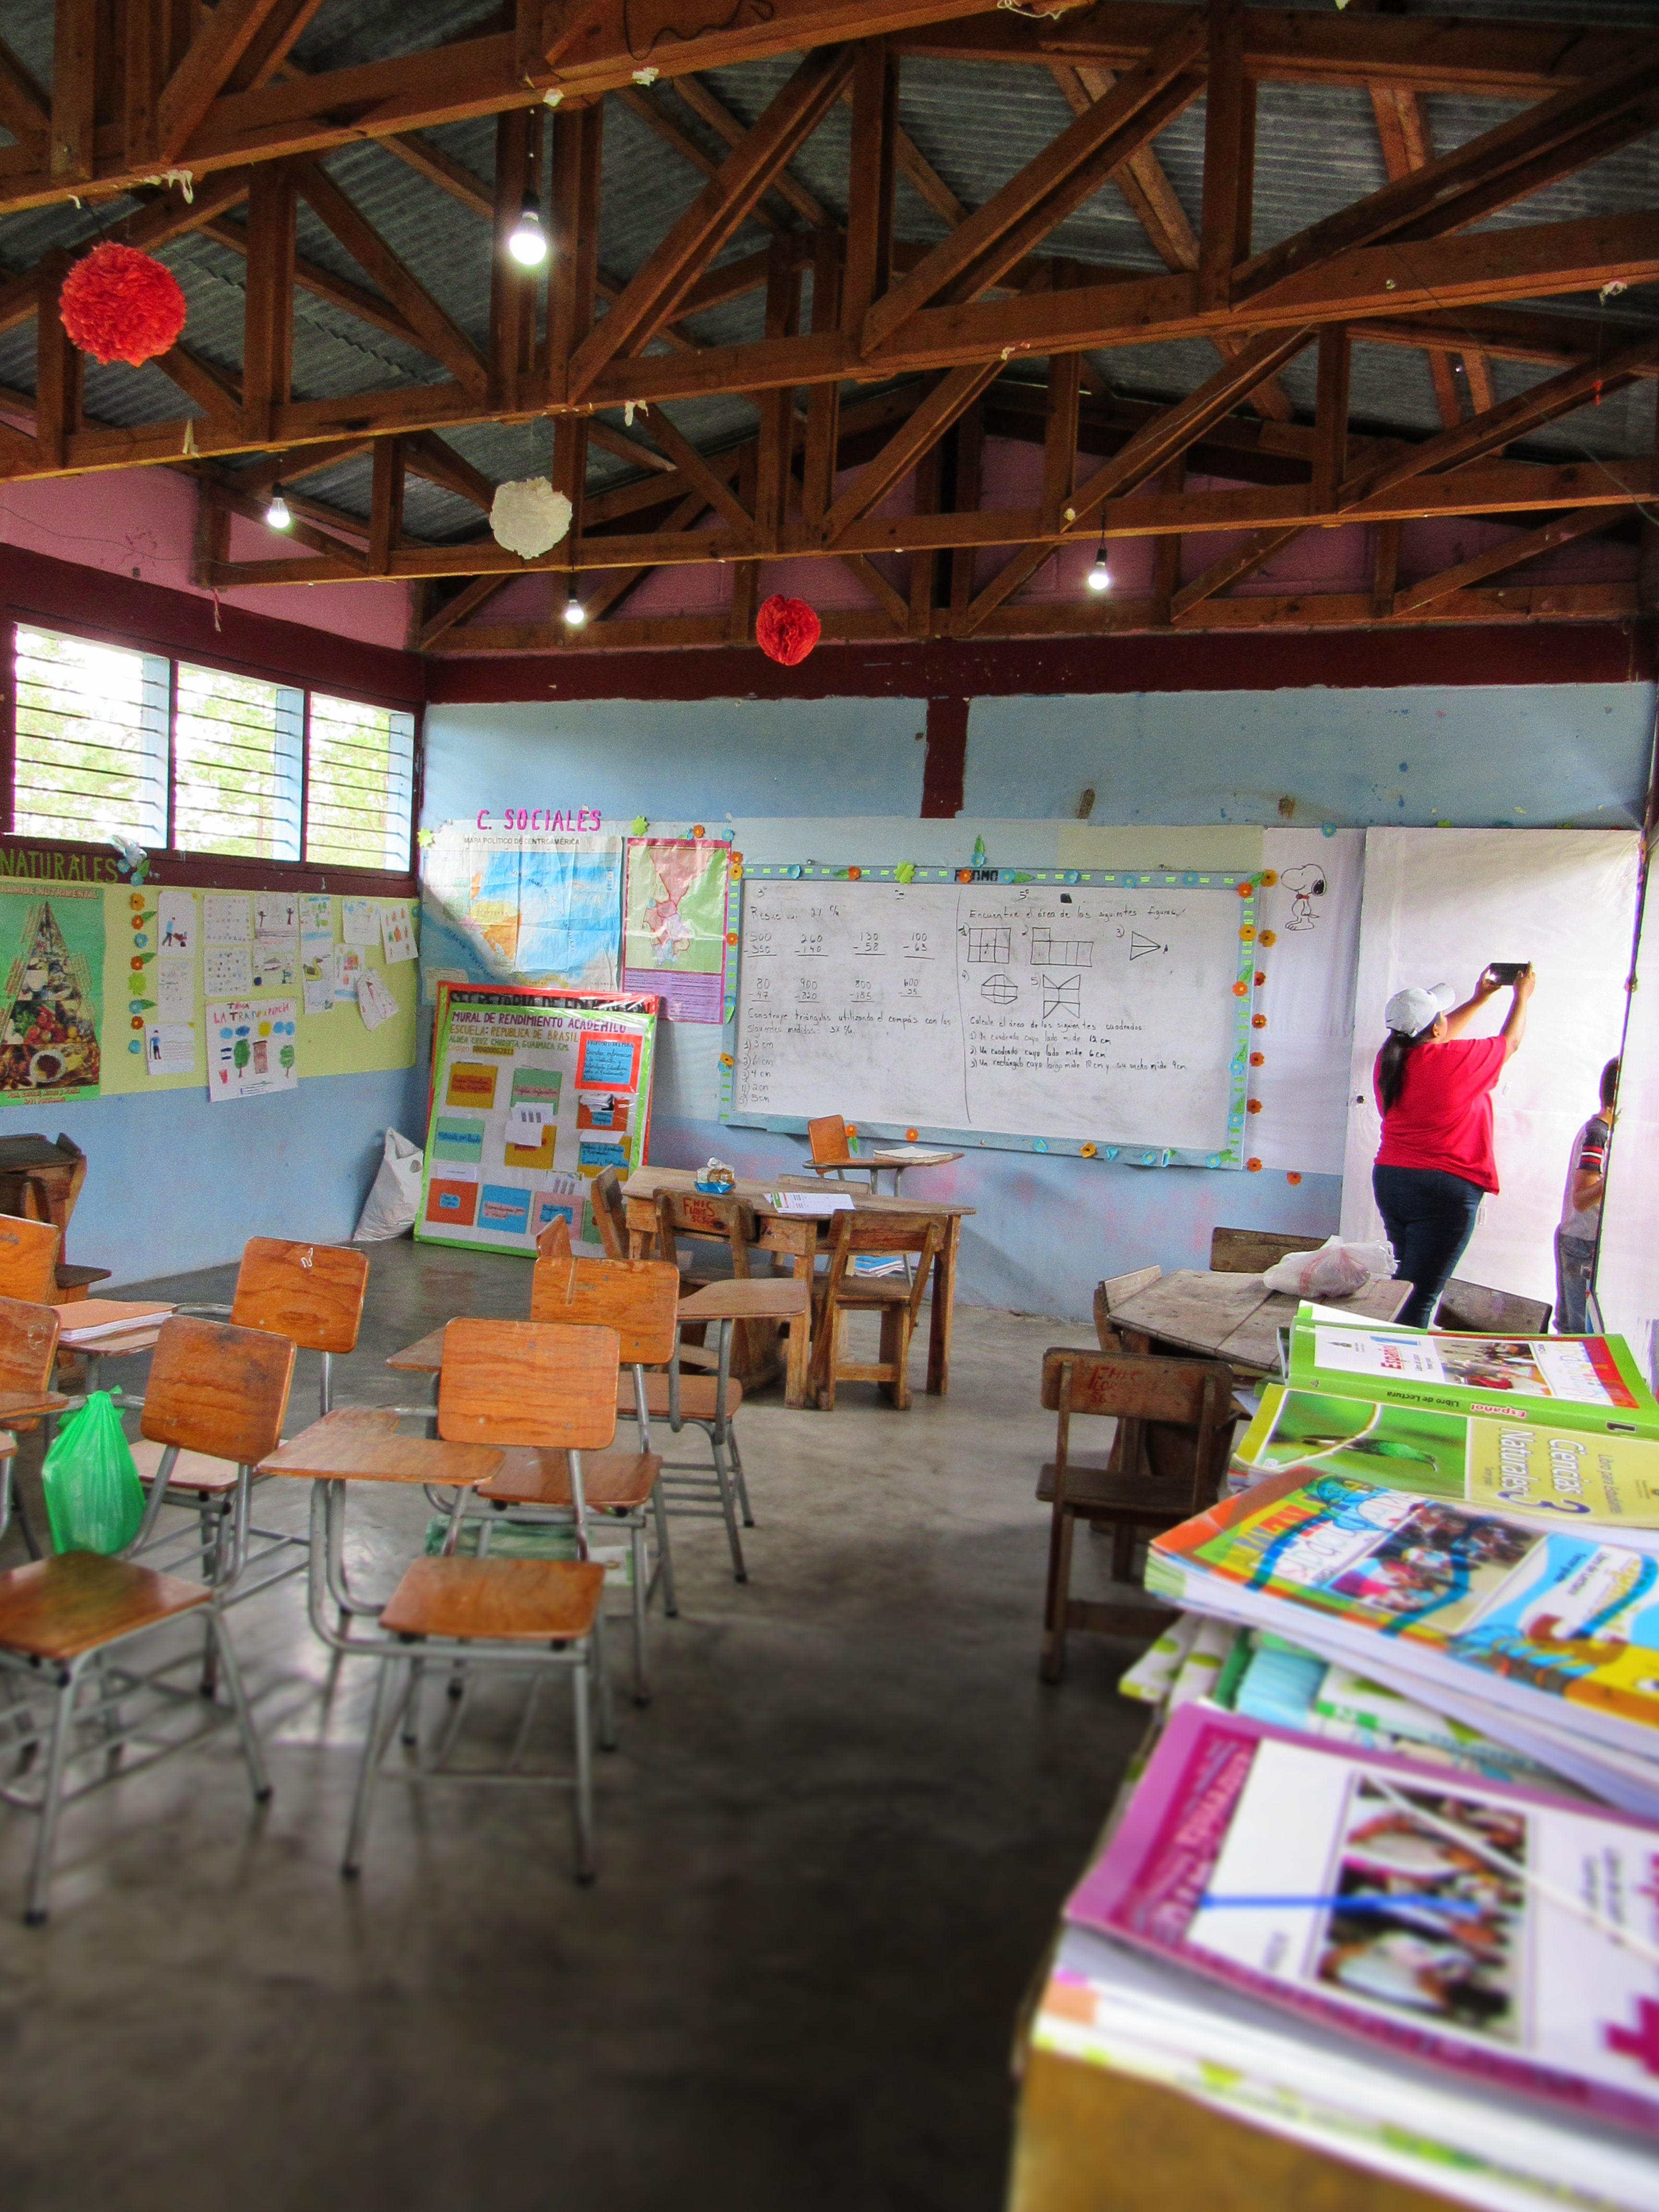 School with Lights Installed